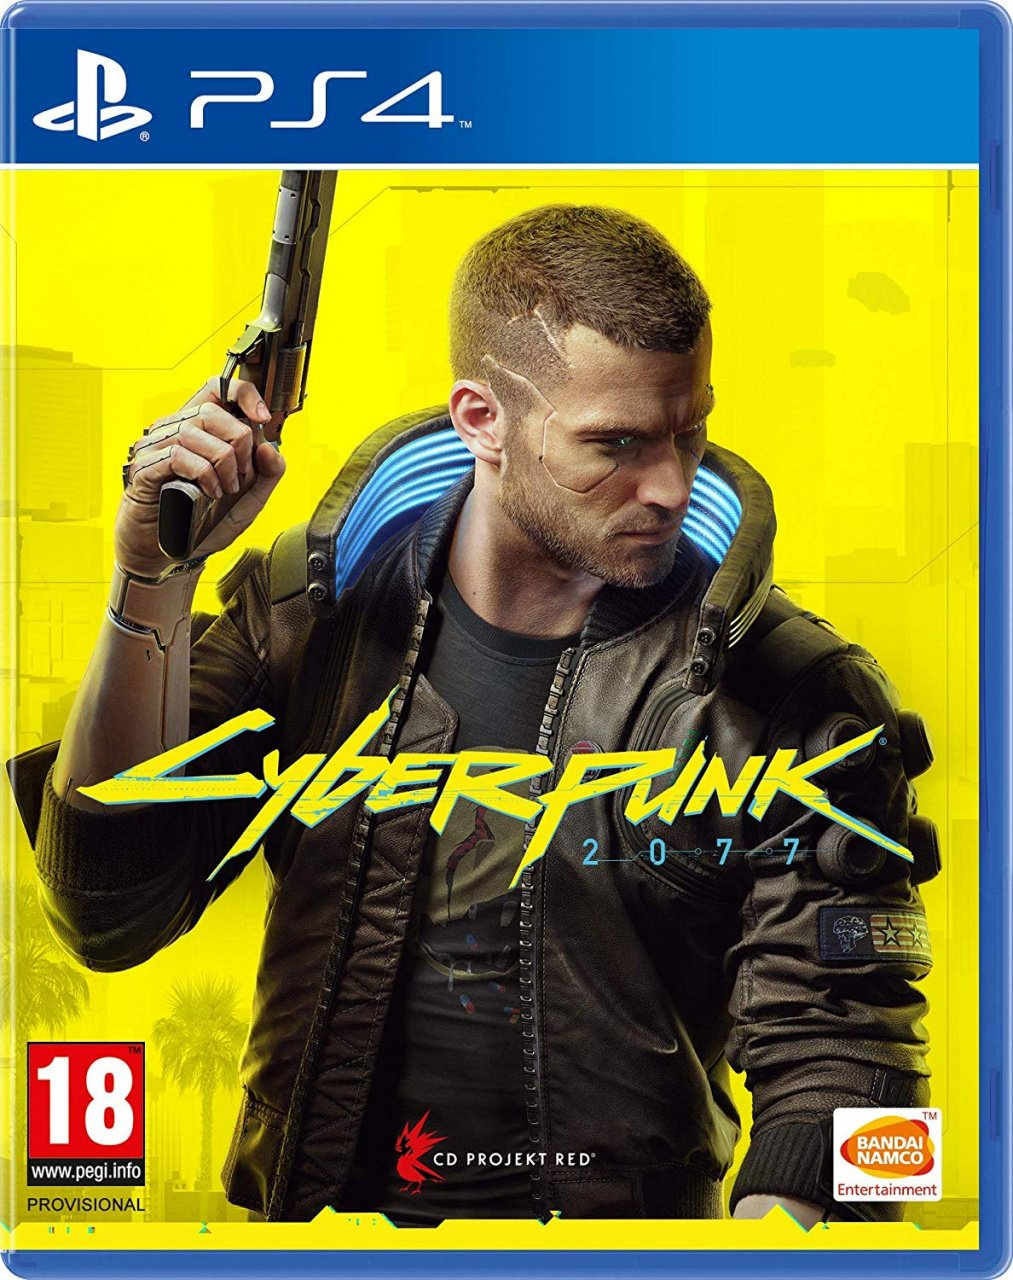 Cyberpunk 2077 character choices and life path detailed